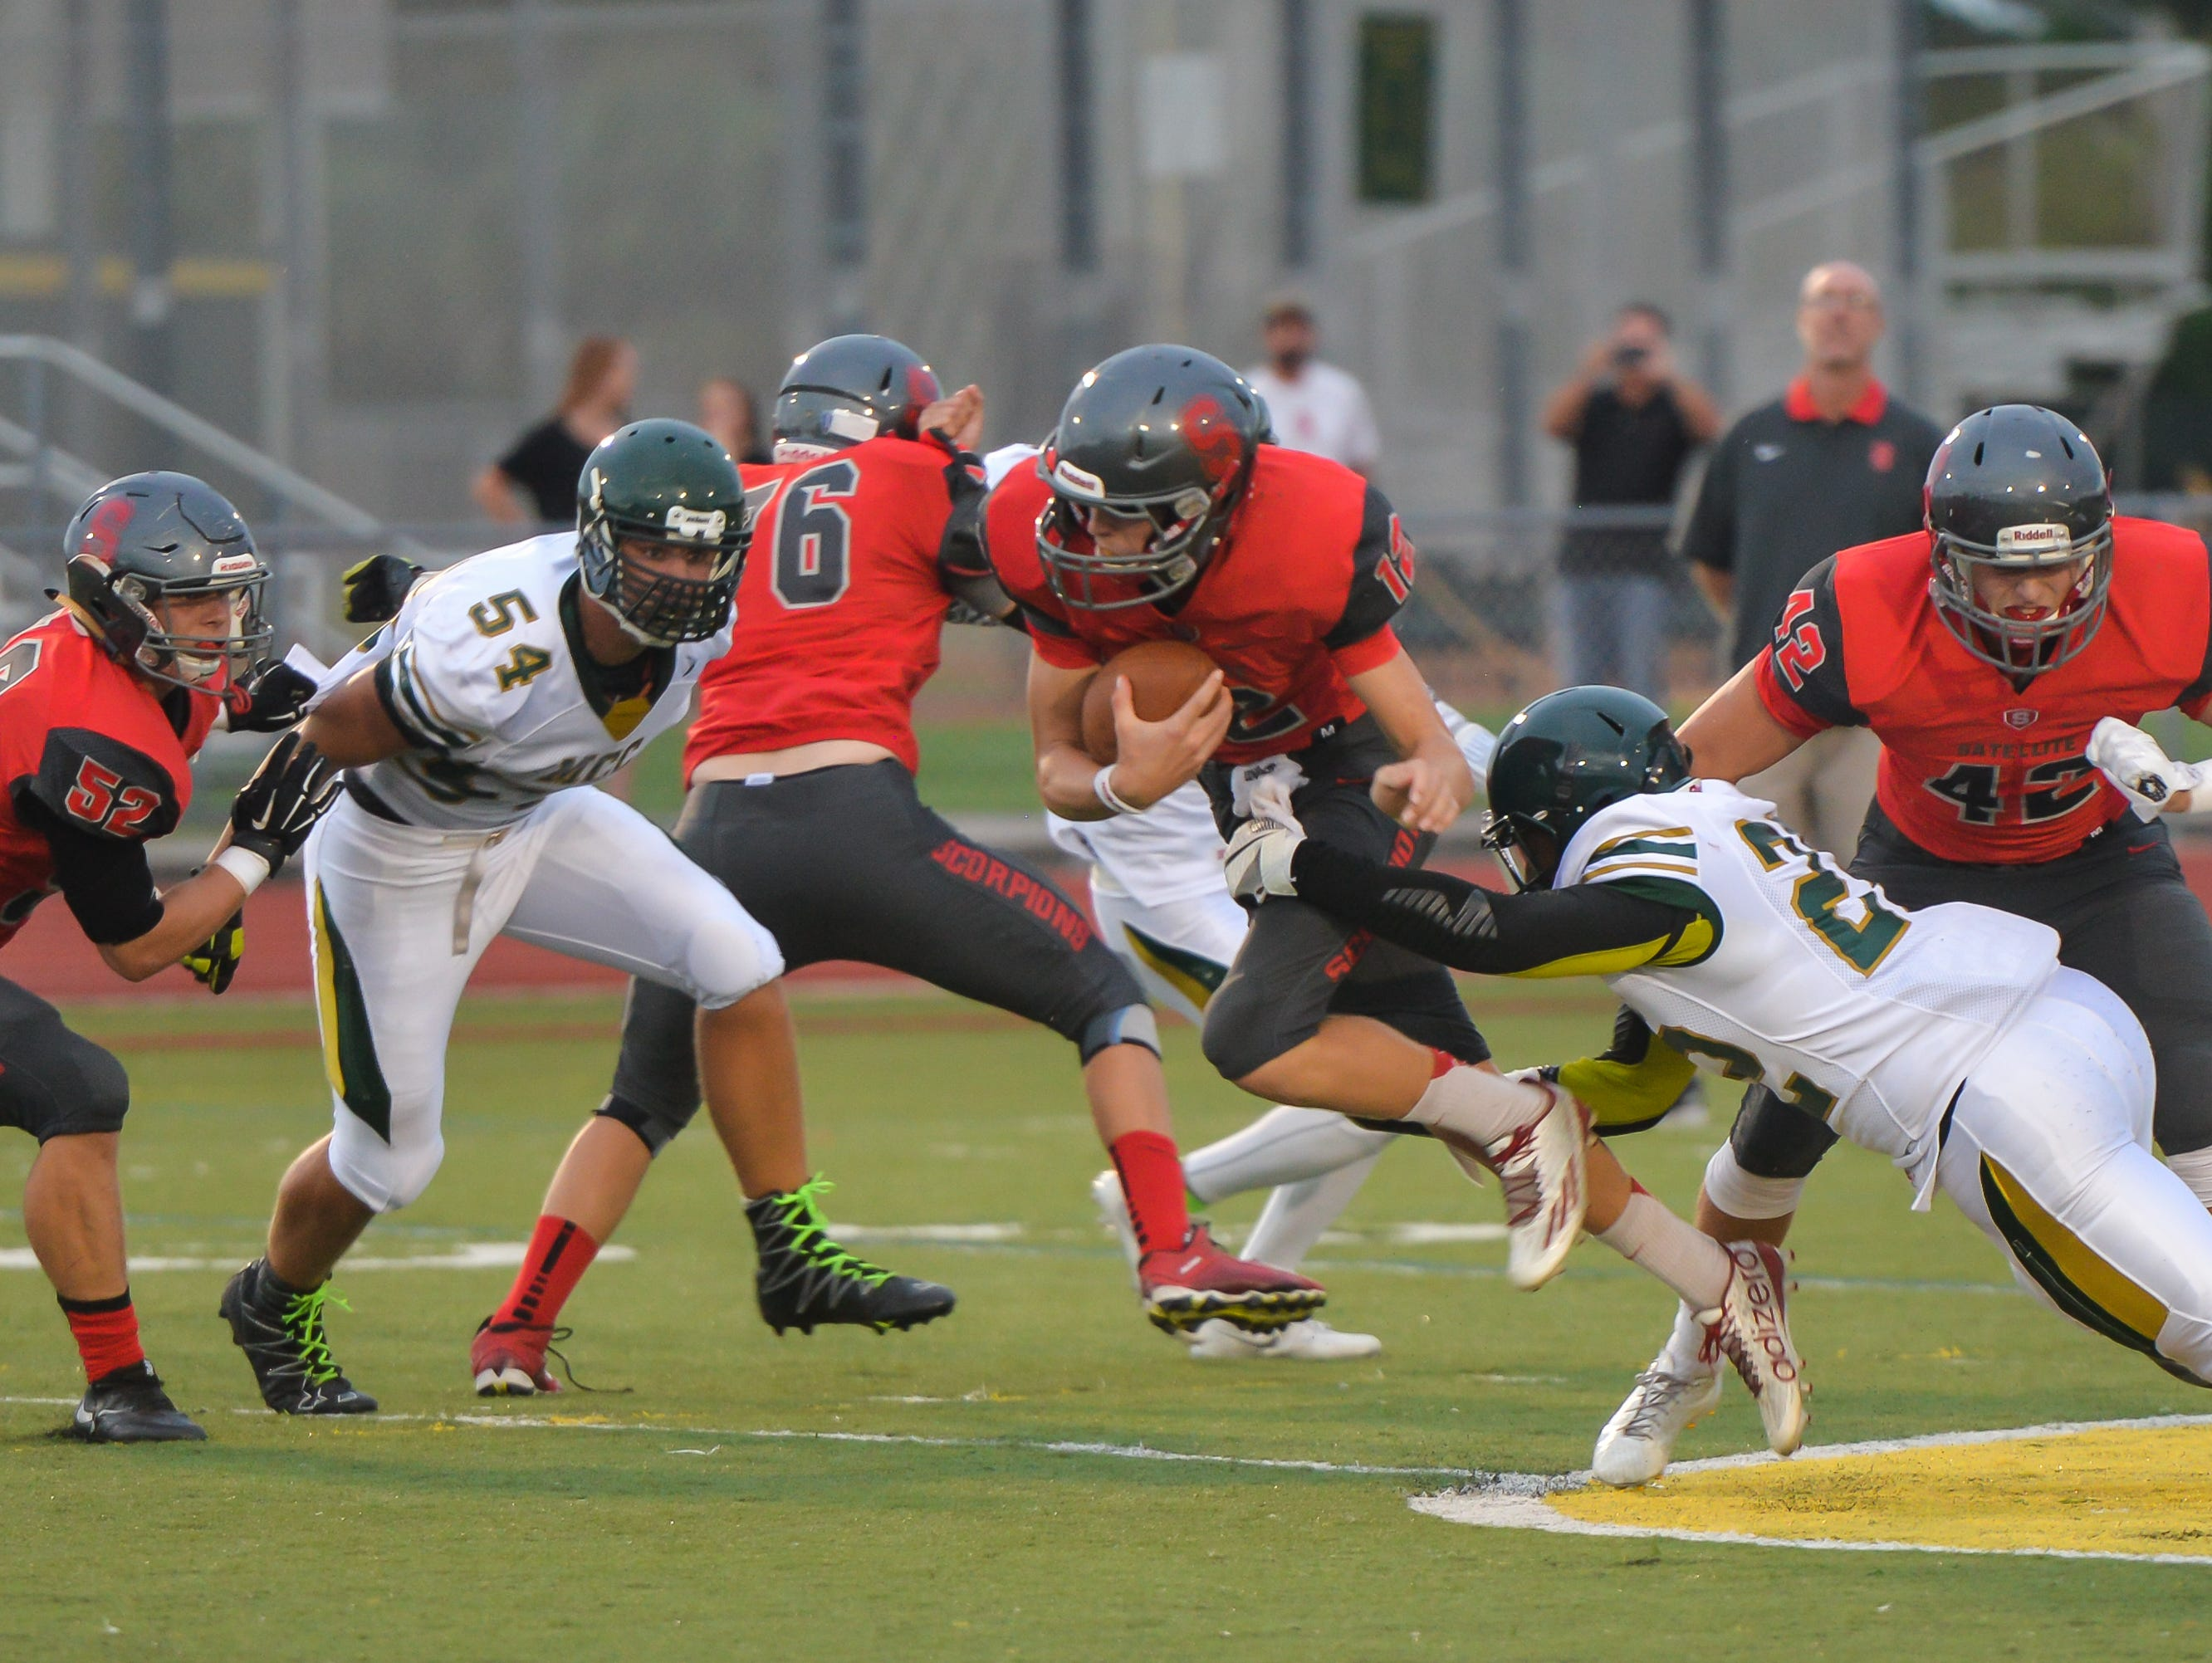 Satellite's Noah Mumme carries the ball during the game at Melbourne Central Catholic High School.